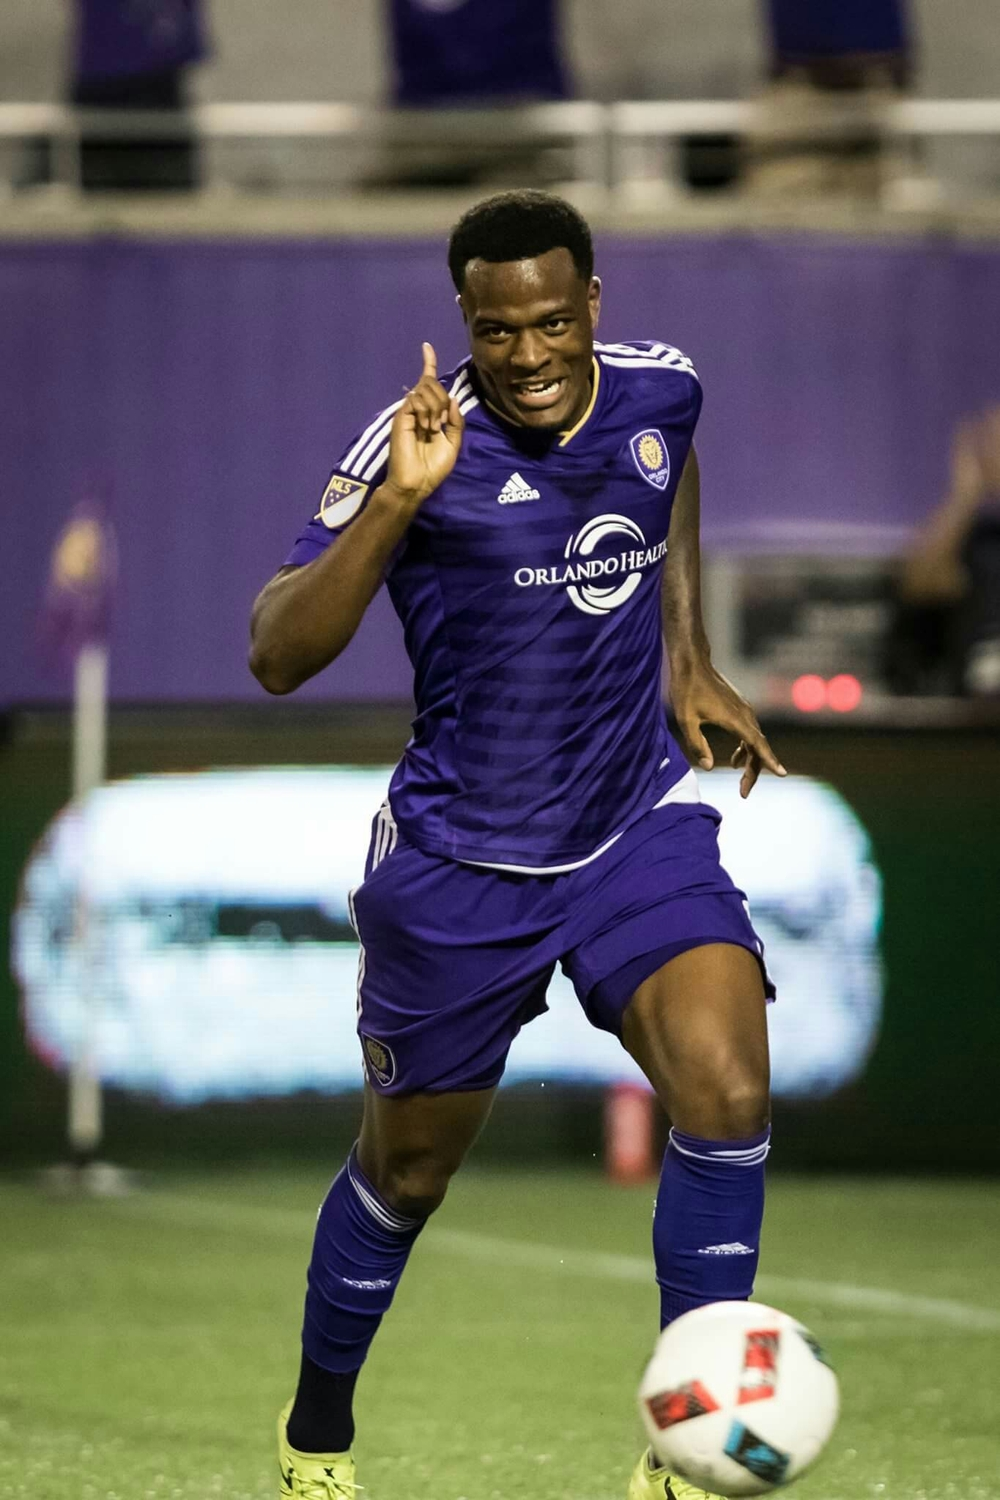 Larin is dat guy.